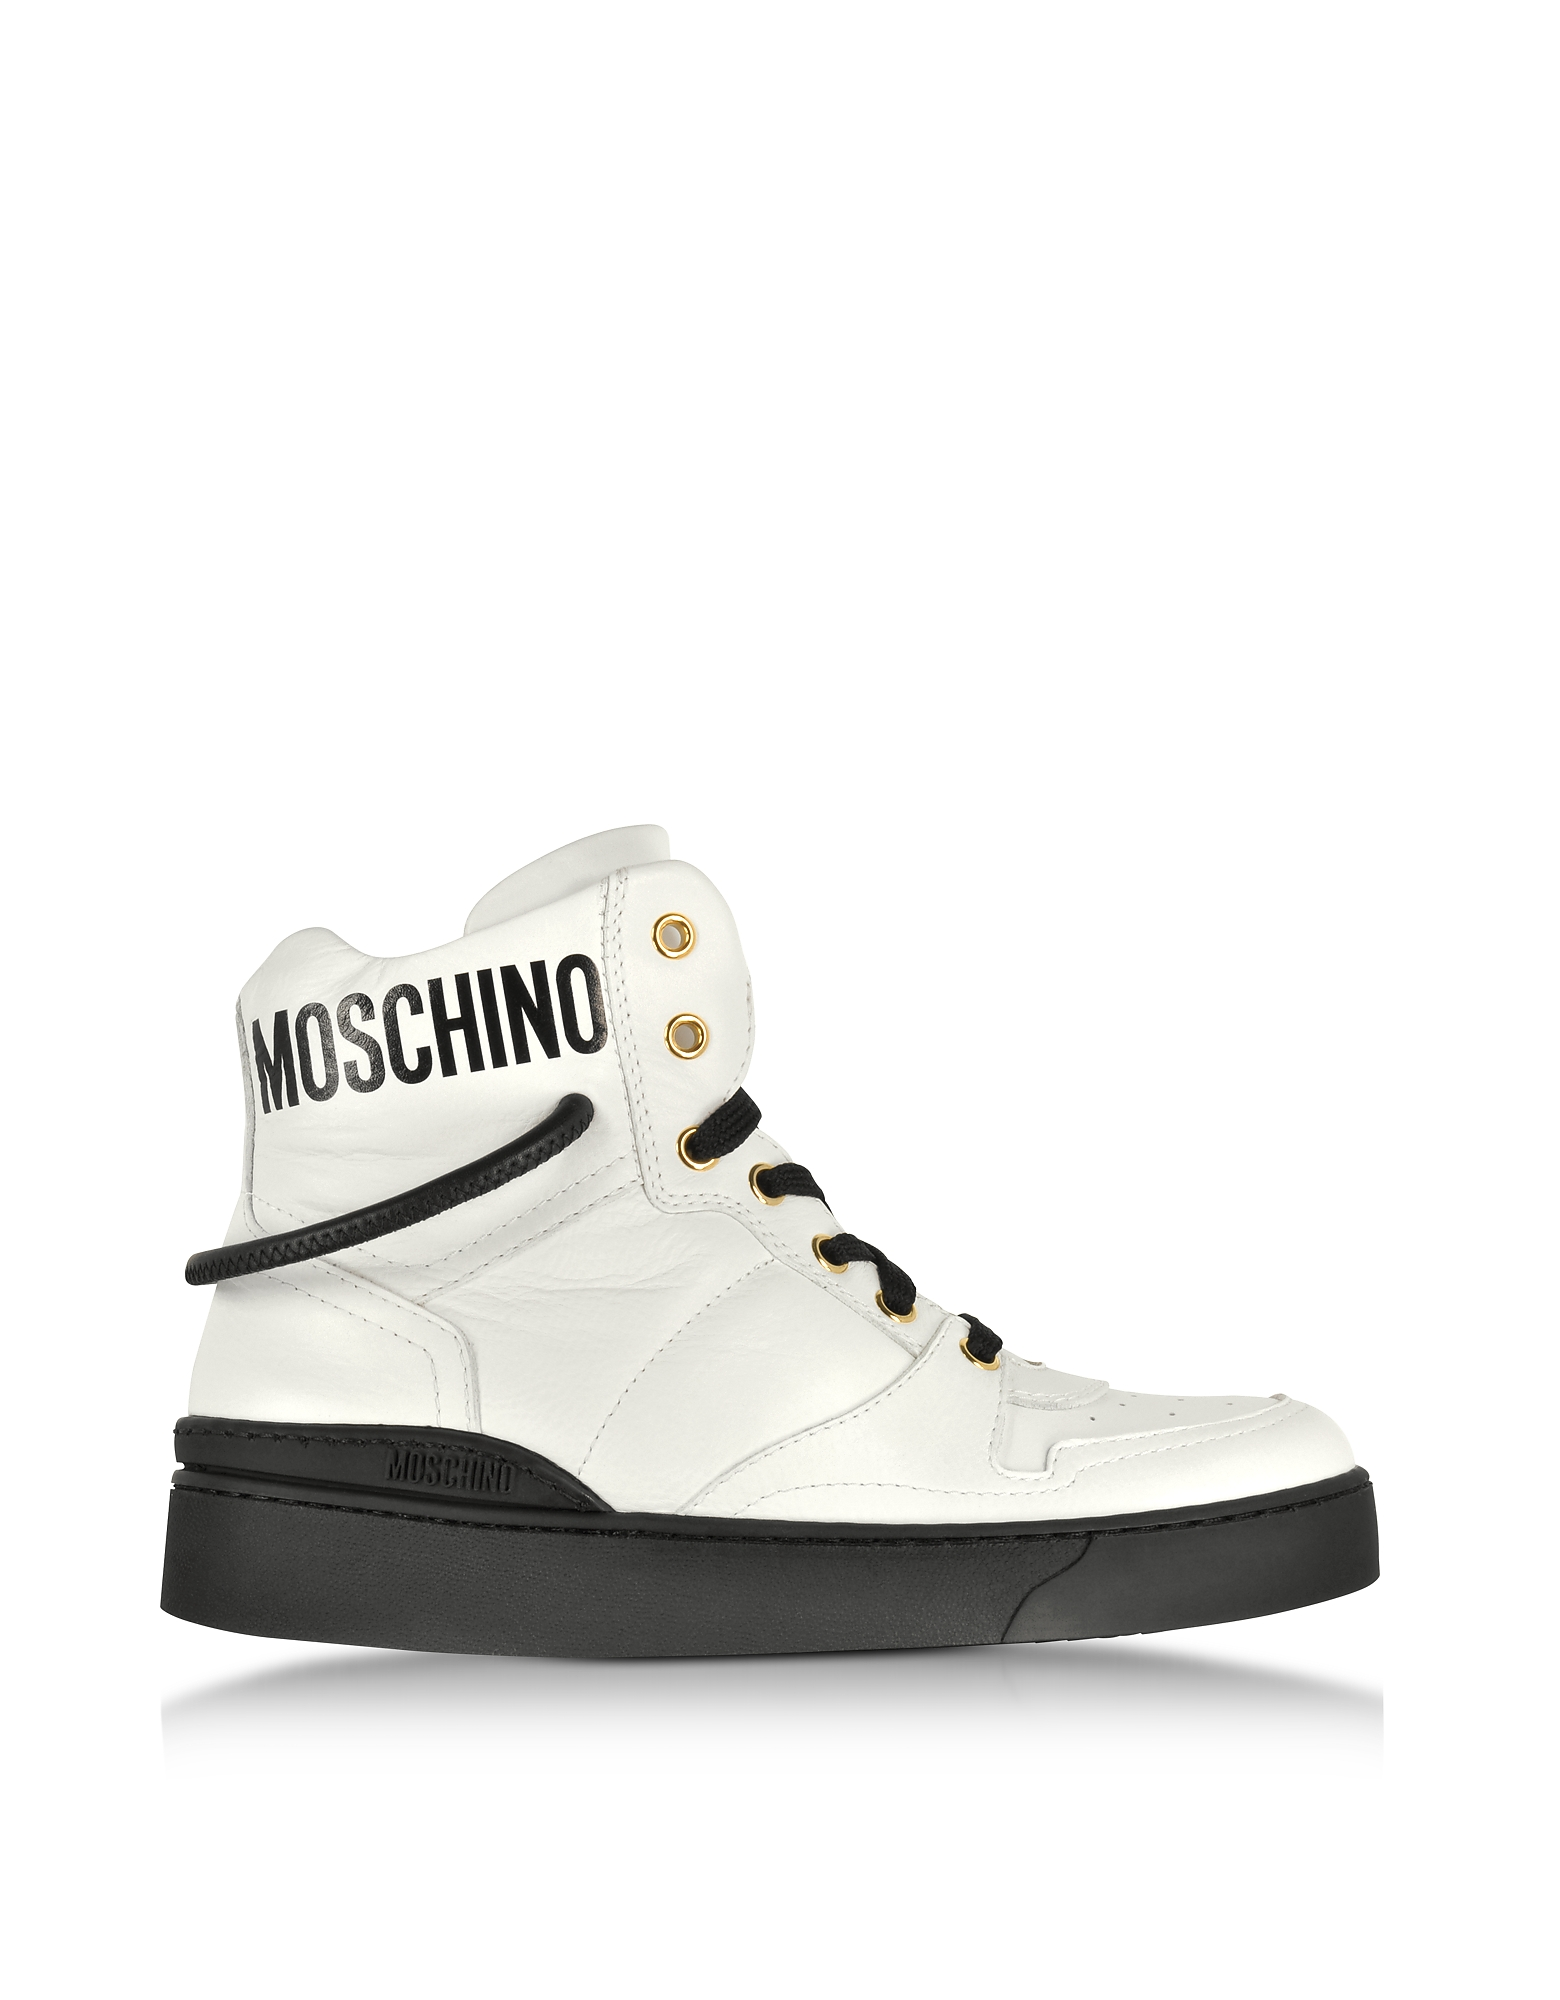 Moschino Shoes, Optic White Nappa Leather High Top Sneakers